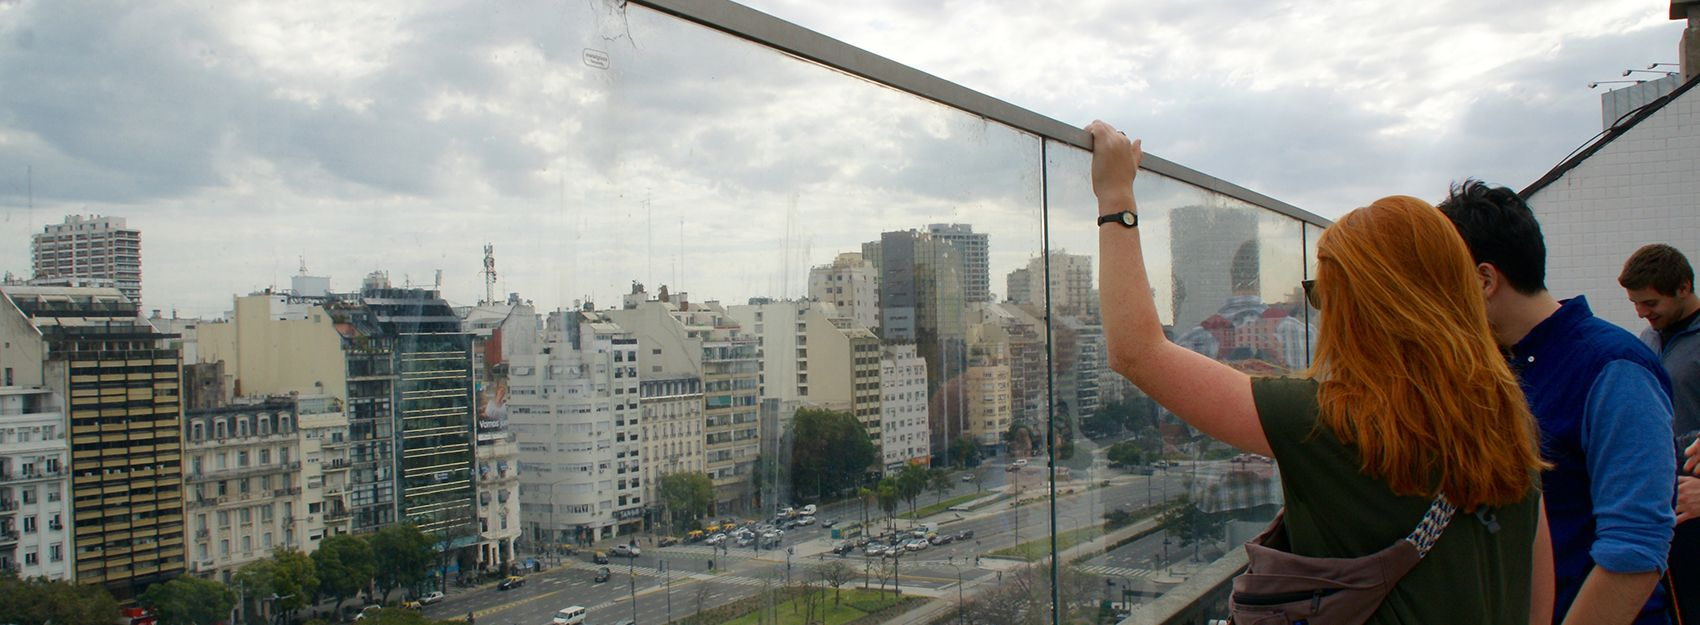 Buenos Aires study abroad students look out over the street behind glass